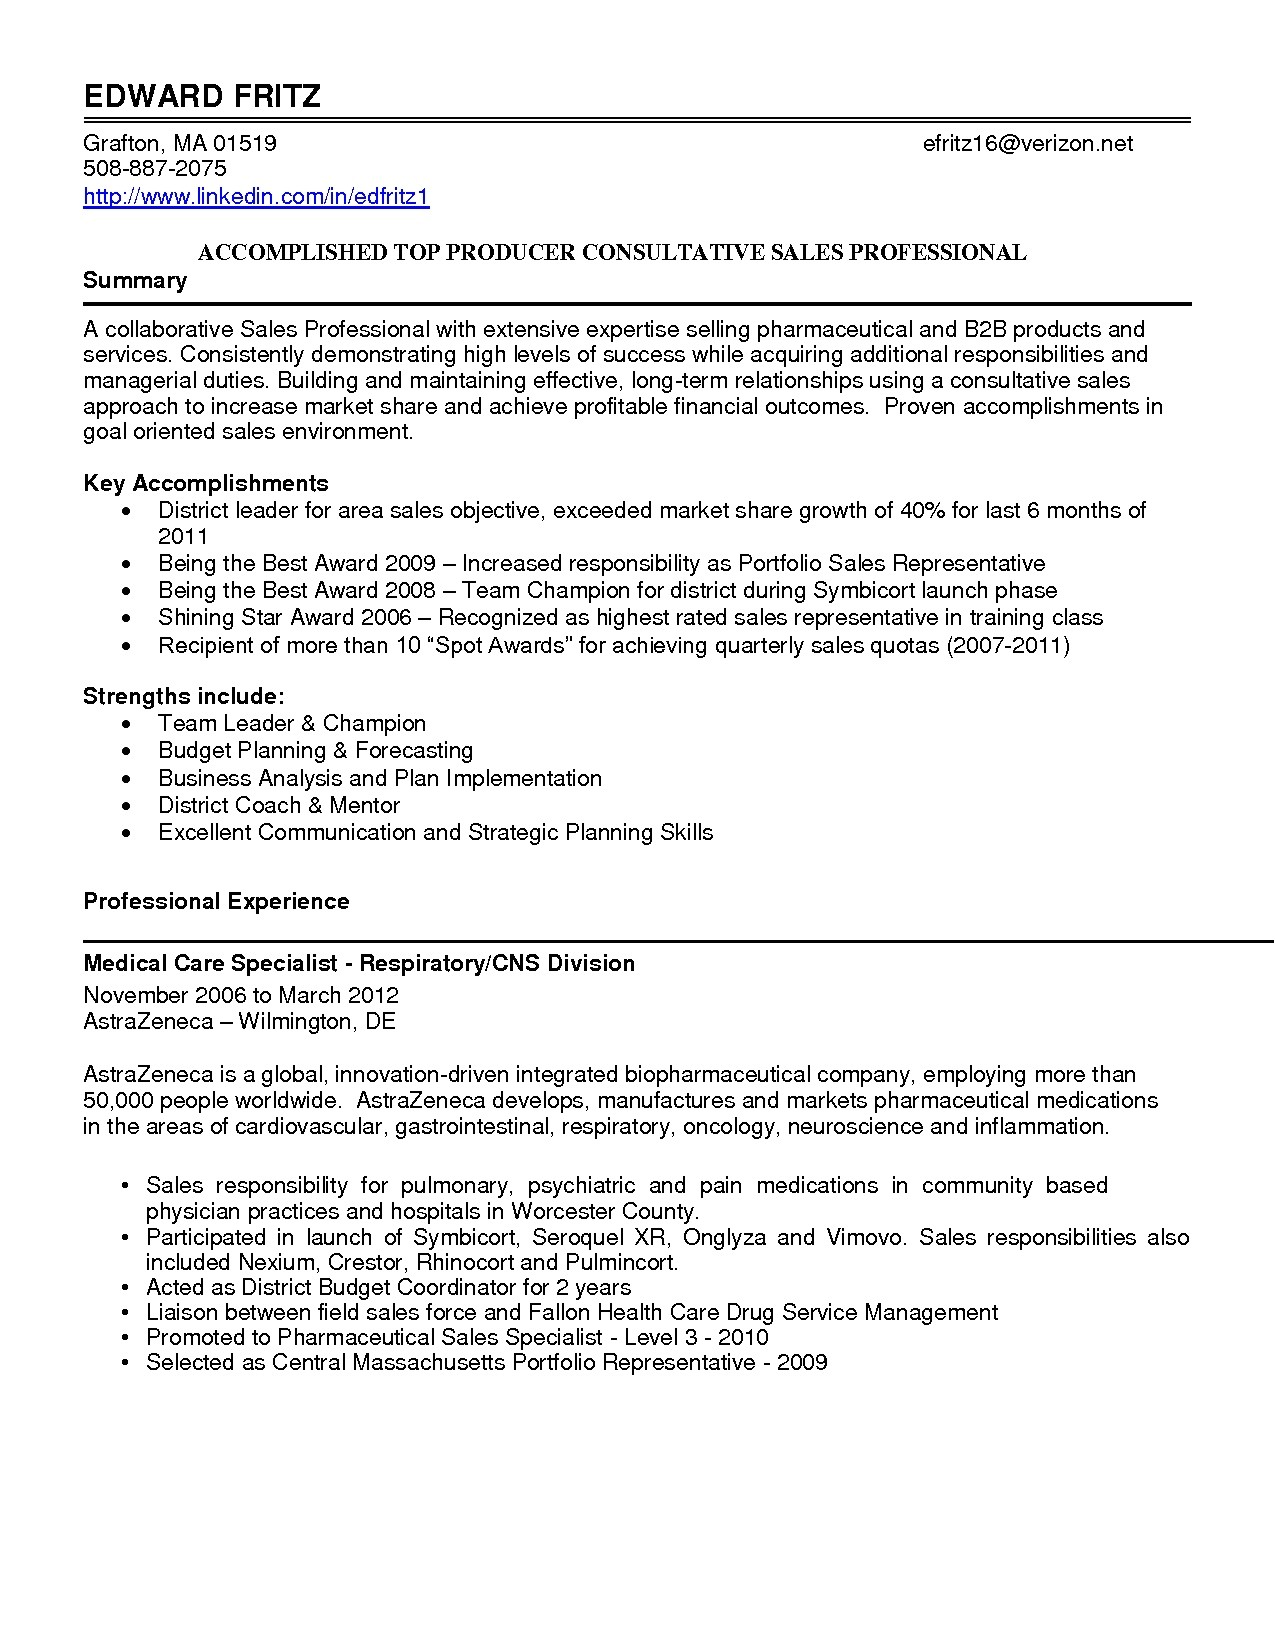 Resume Summary Samples for It Professionals 13 Best Of Resume Summary Samples for It Professionals